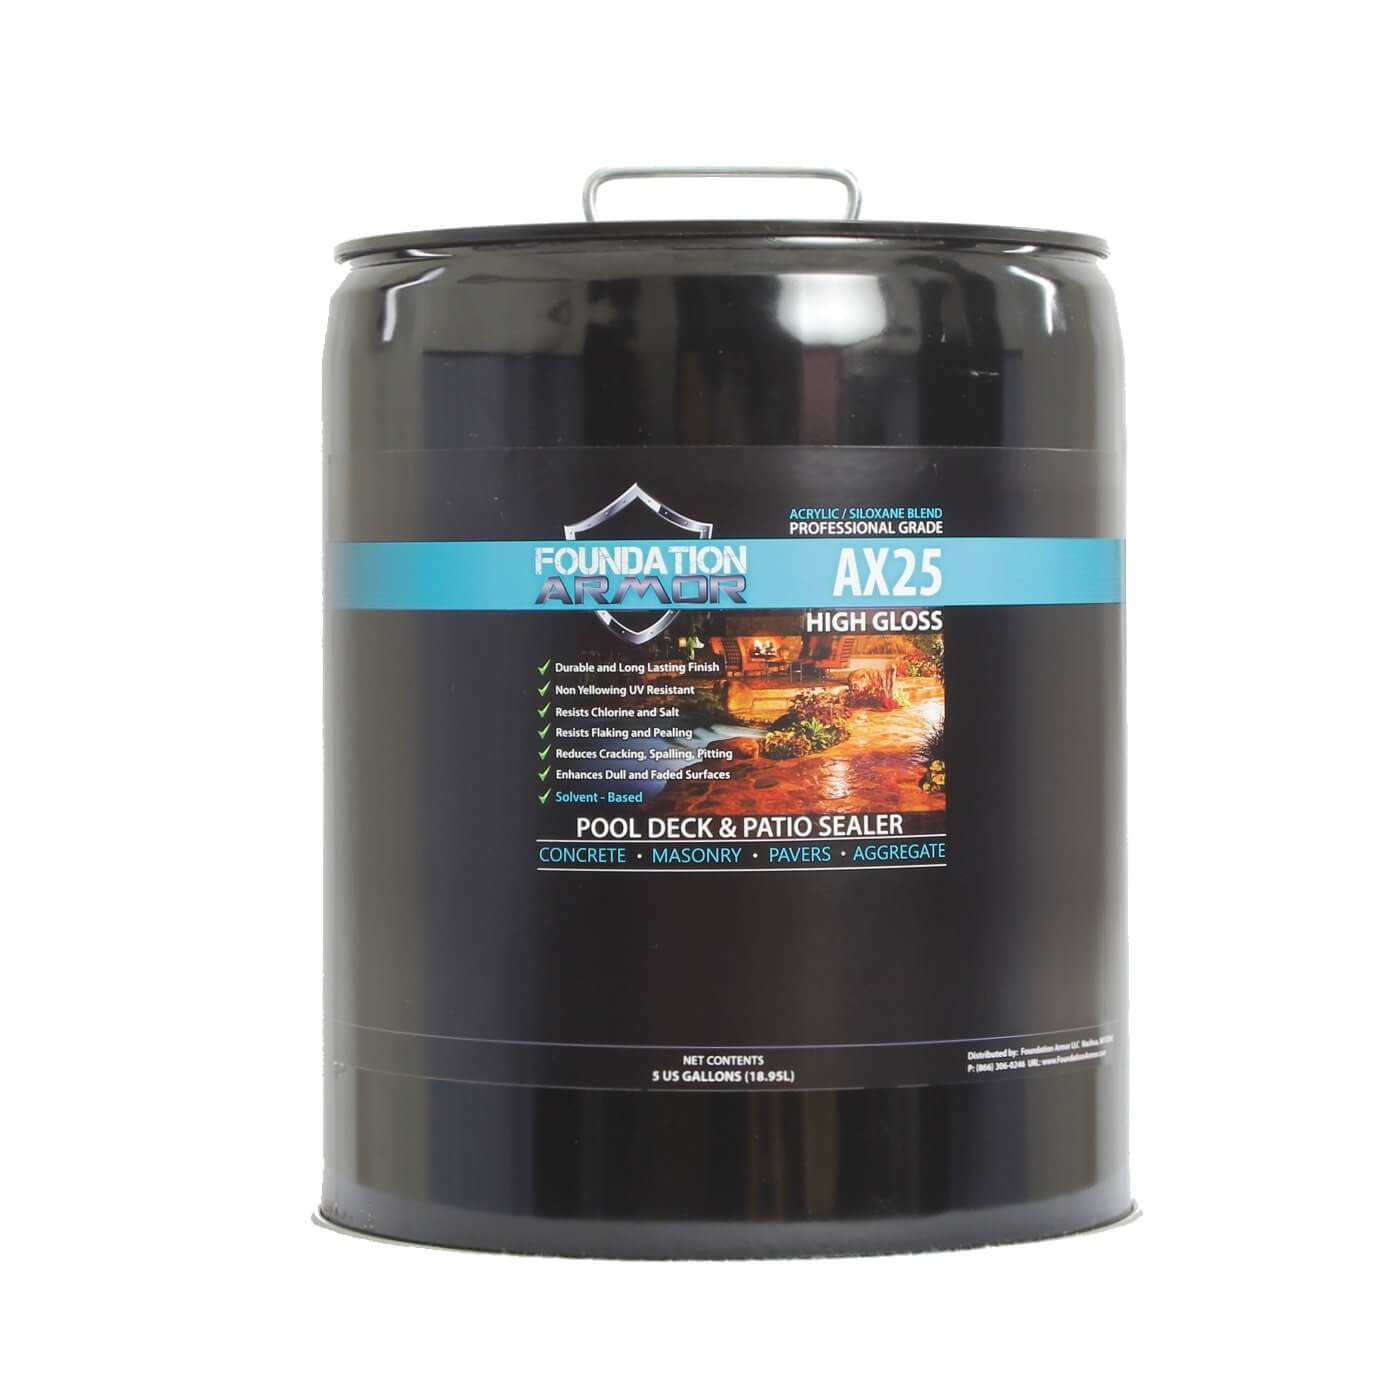 Sealing exposed aggregate pool deck - Ax25 Siloxane Infused High Gloss Acrylic 5 Gal